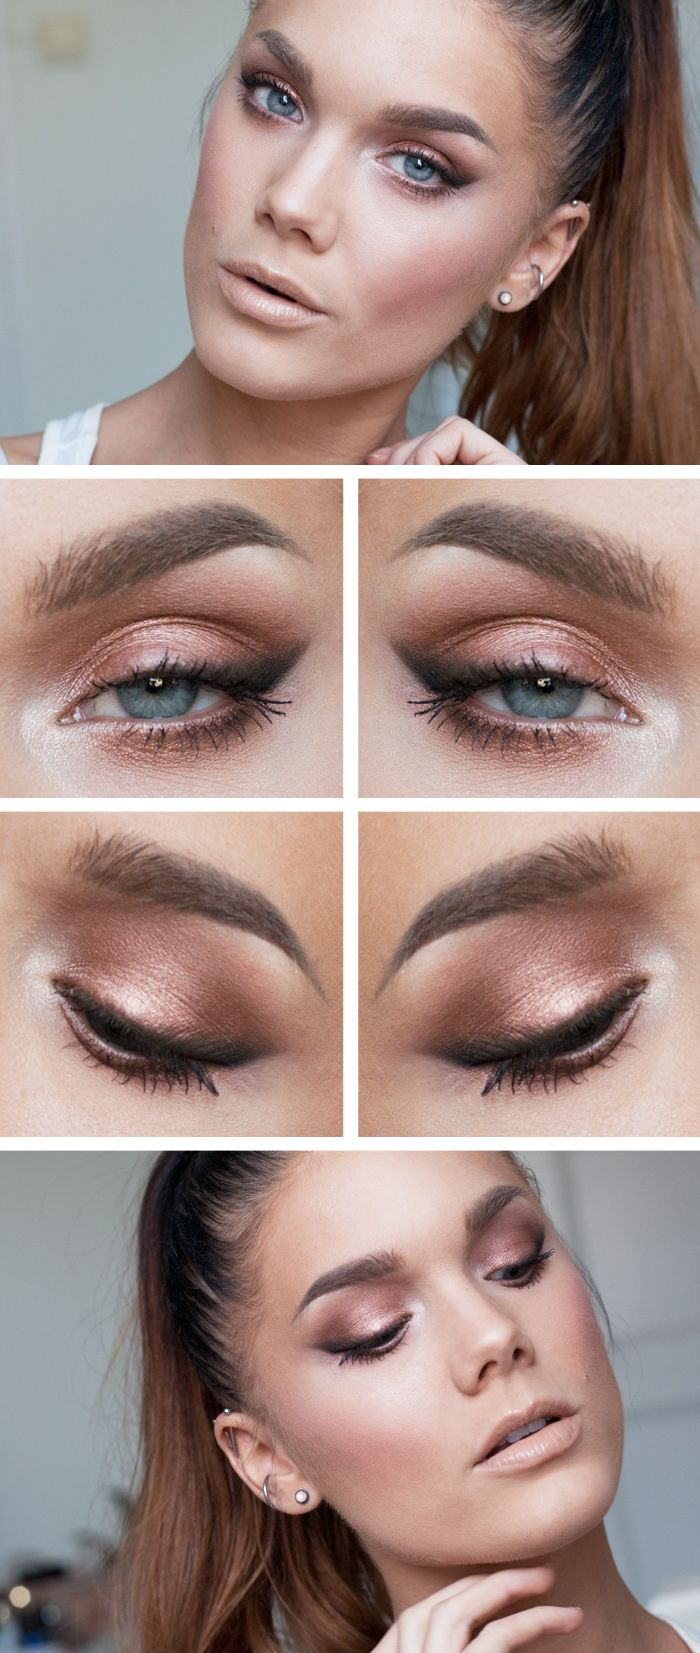 rose gold eye with smudged eyeliner - 09 11 13 More b95163e10963c